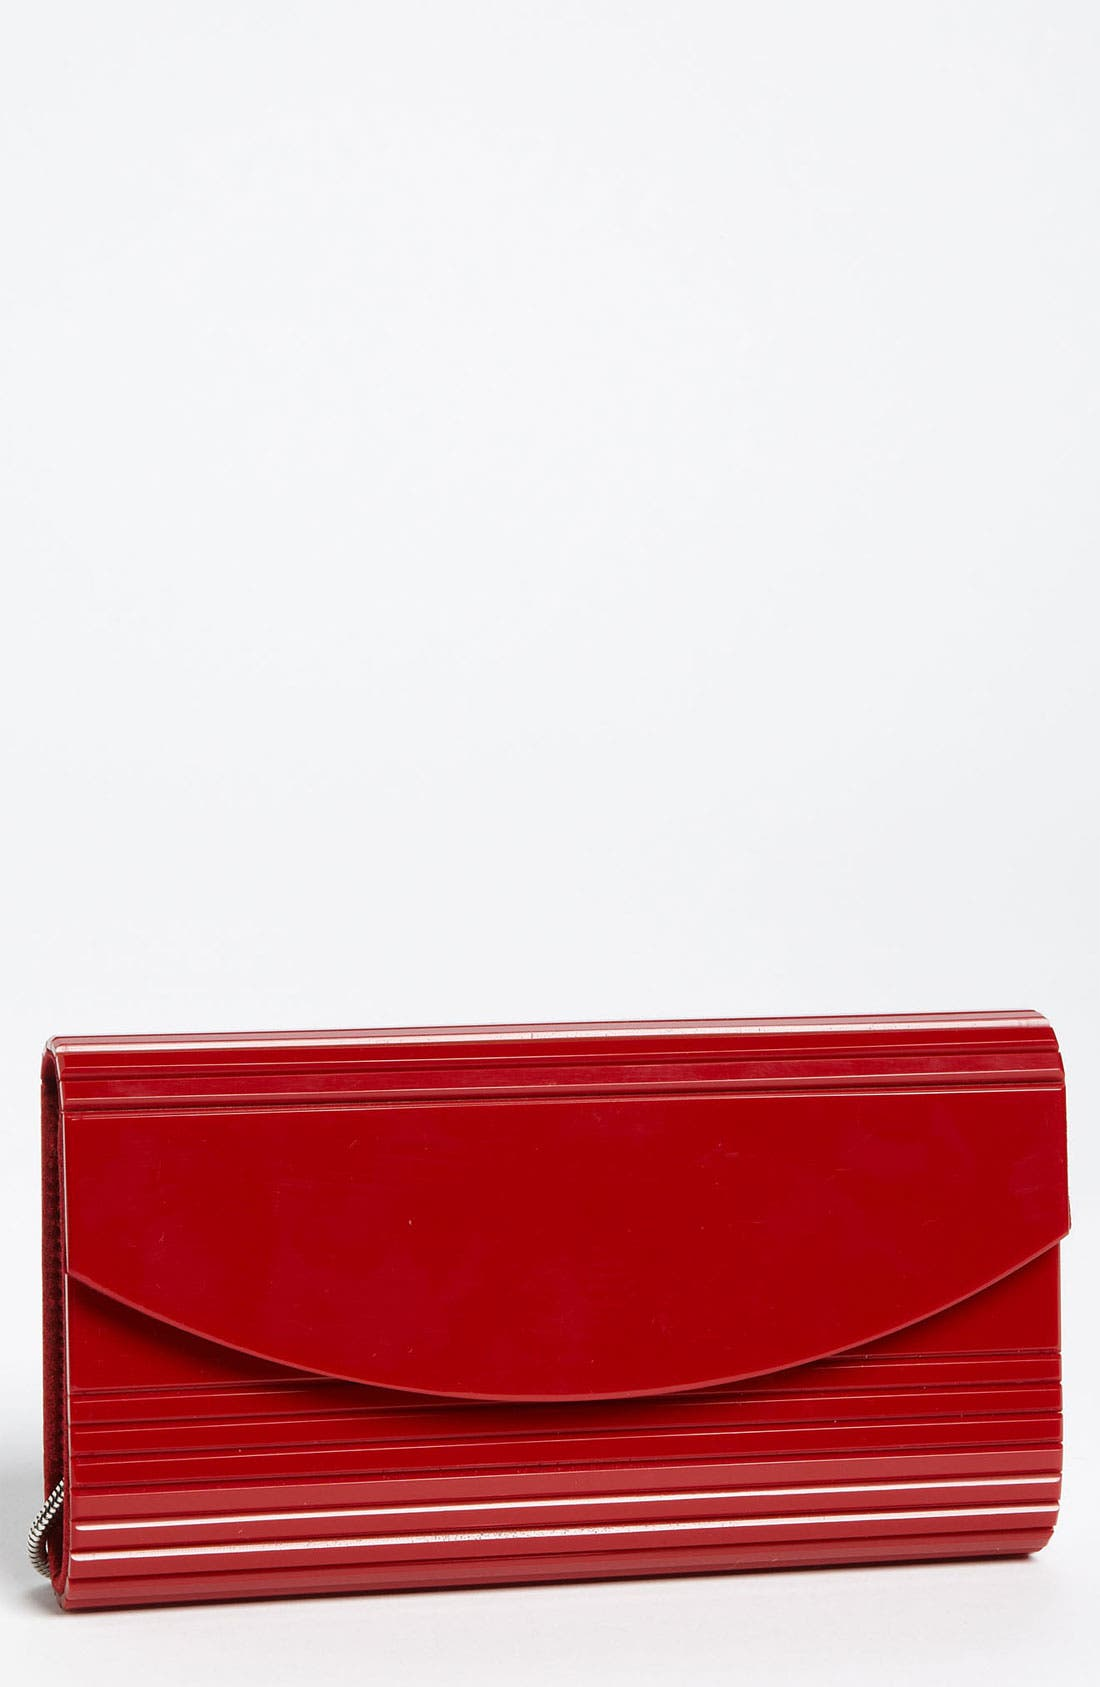 Alternate Image 1 Selected - Sondra Roberts Resin Clutch